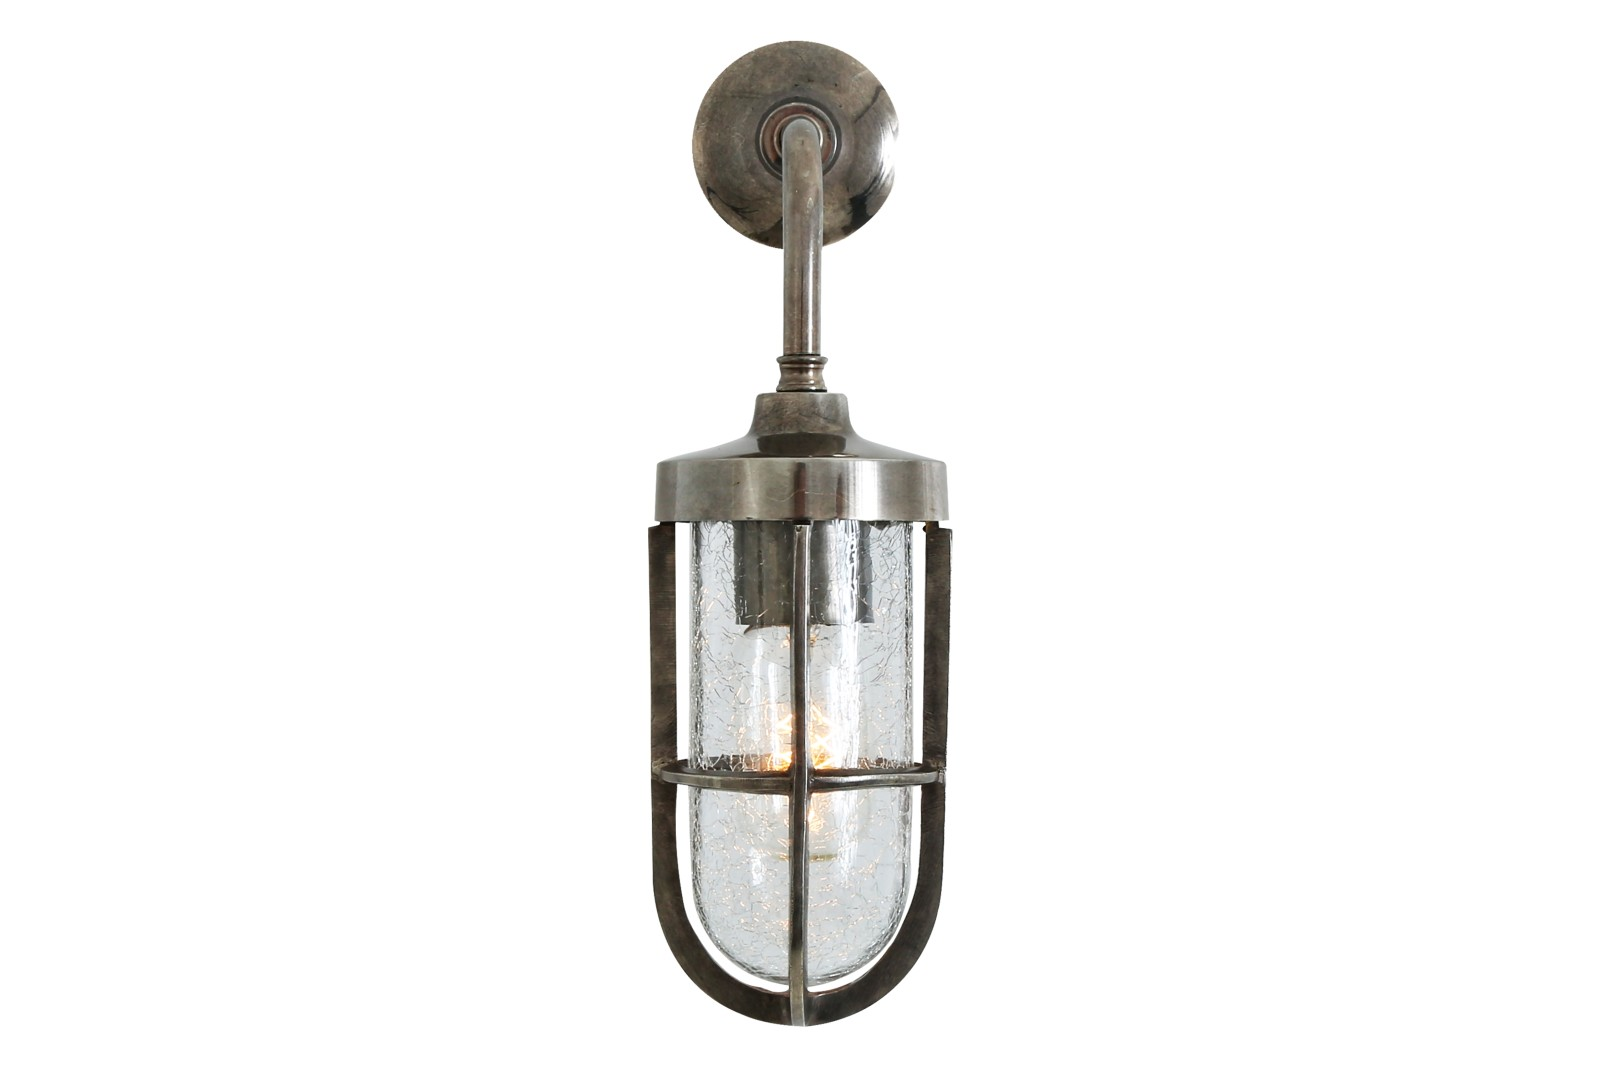 Carac Well Glass Wall Light Antique Silver, Crackled Glass